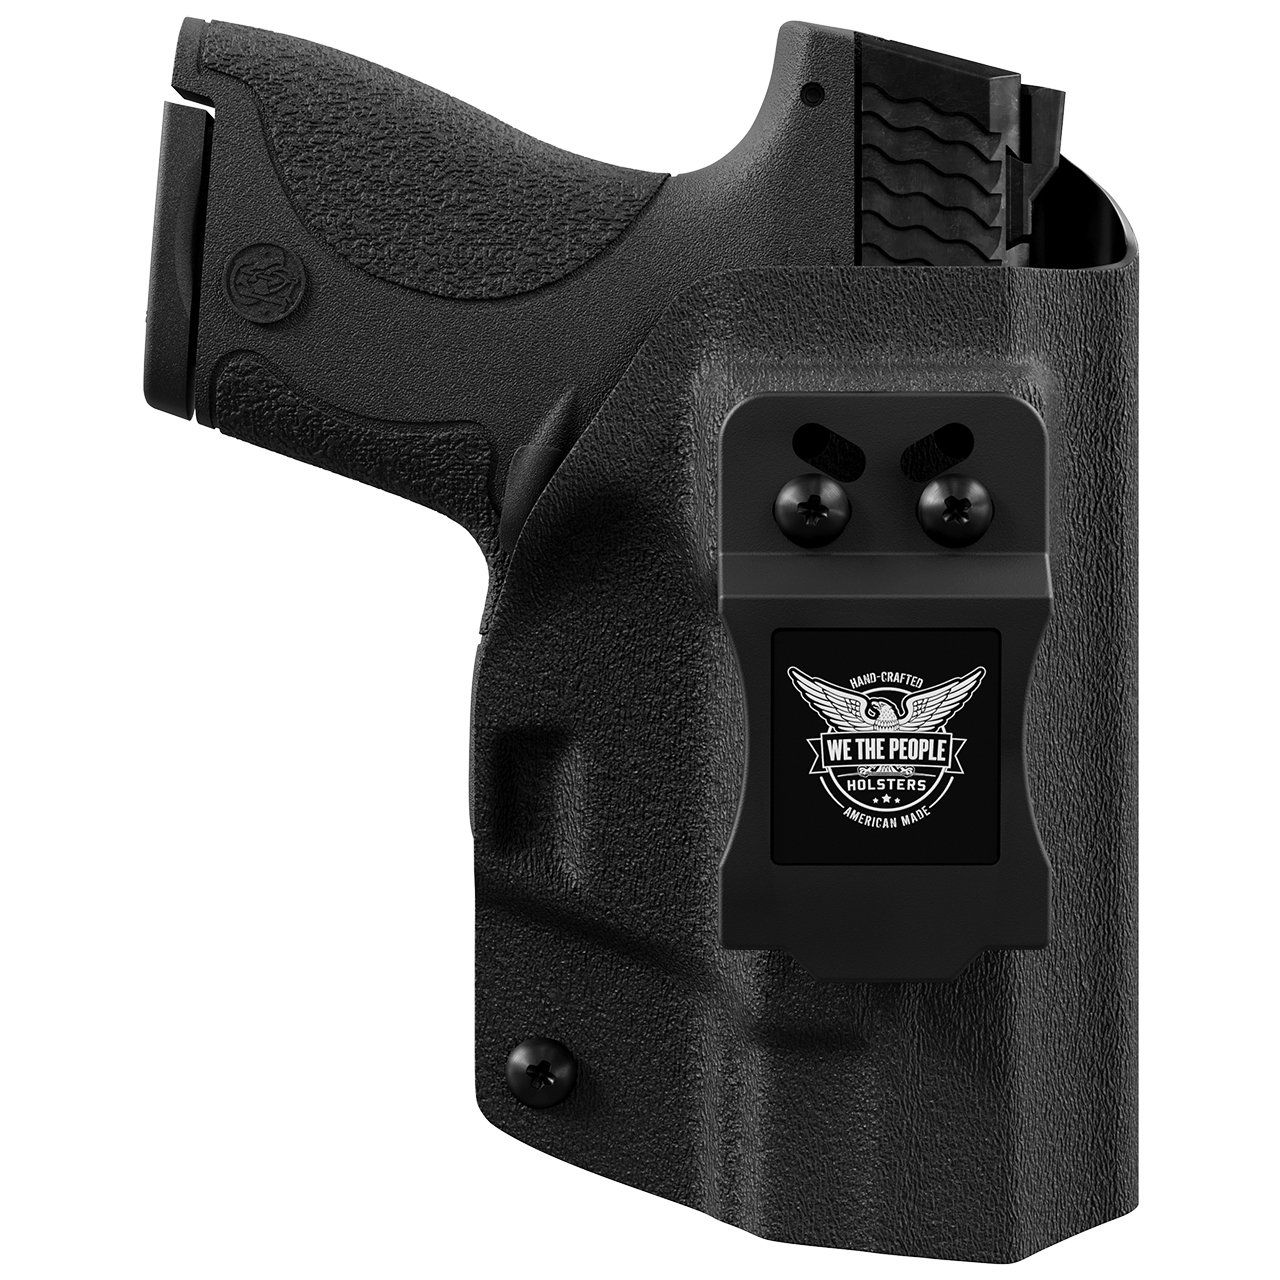 Inside Waistband IWB Concealed Retention Gun Holster for SIG Sauer 1911 Compact